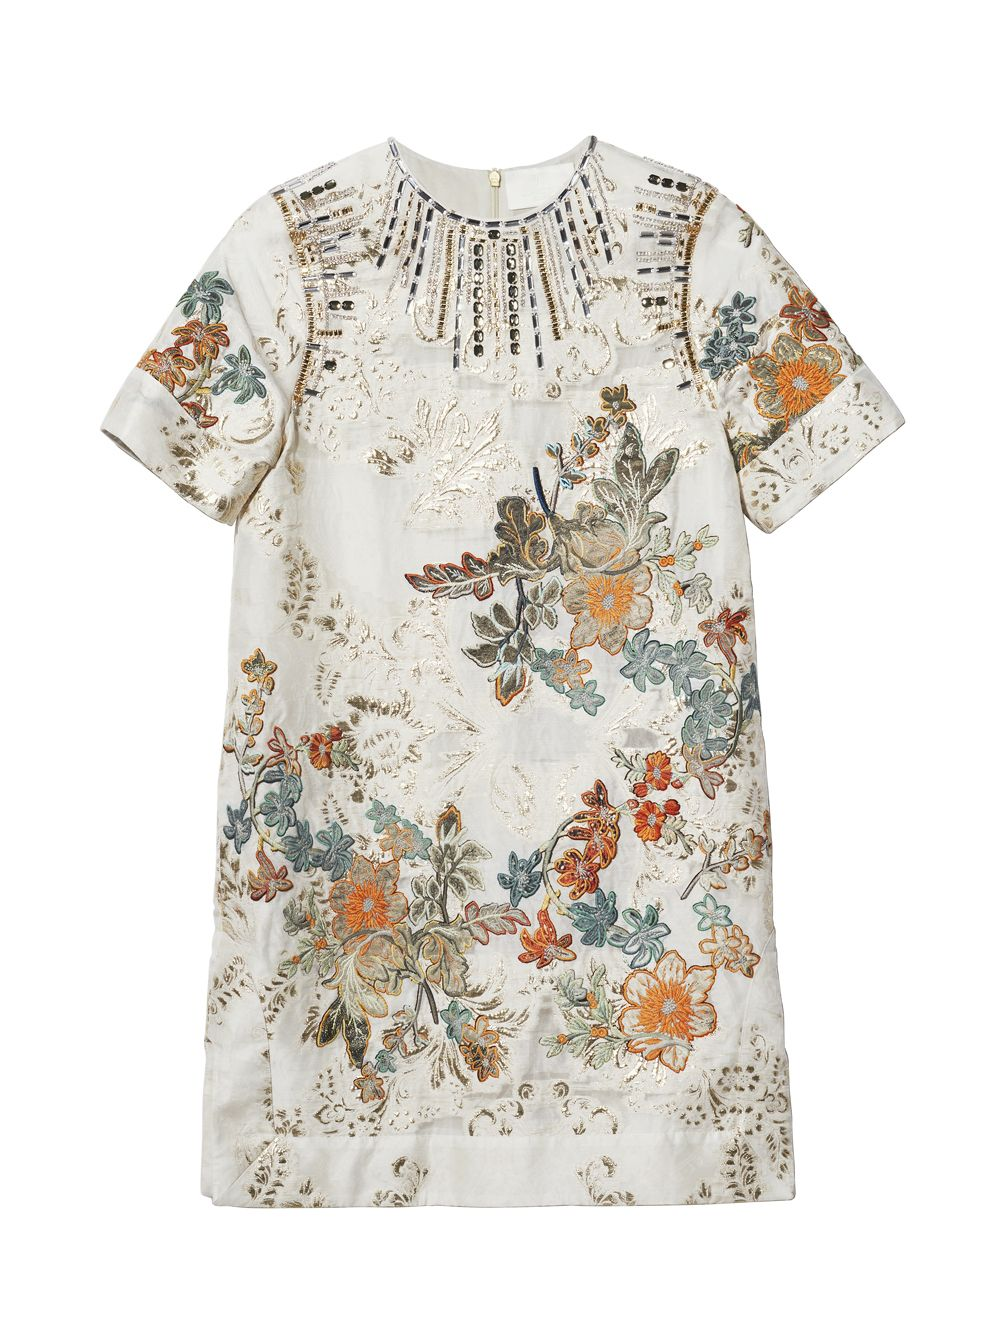 See The Entire H&M Conscious Exclusive Collection 2016